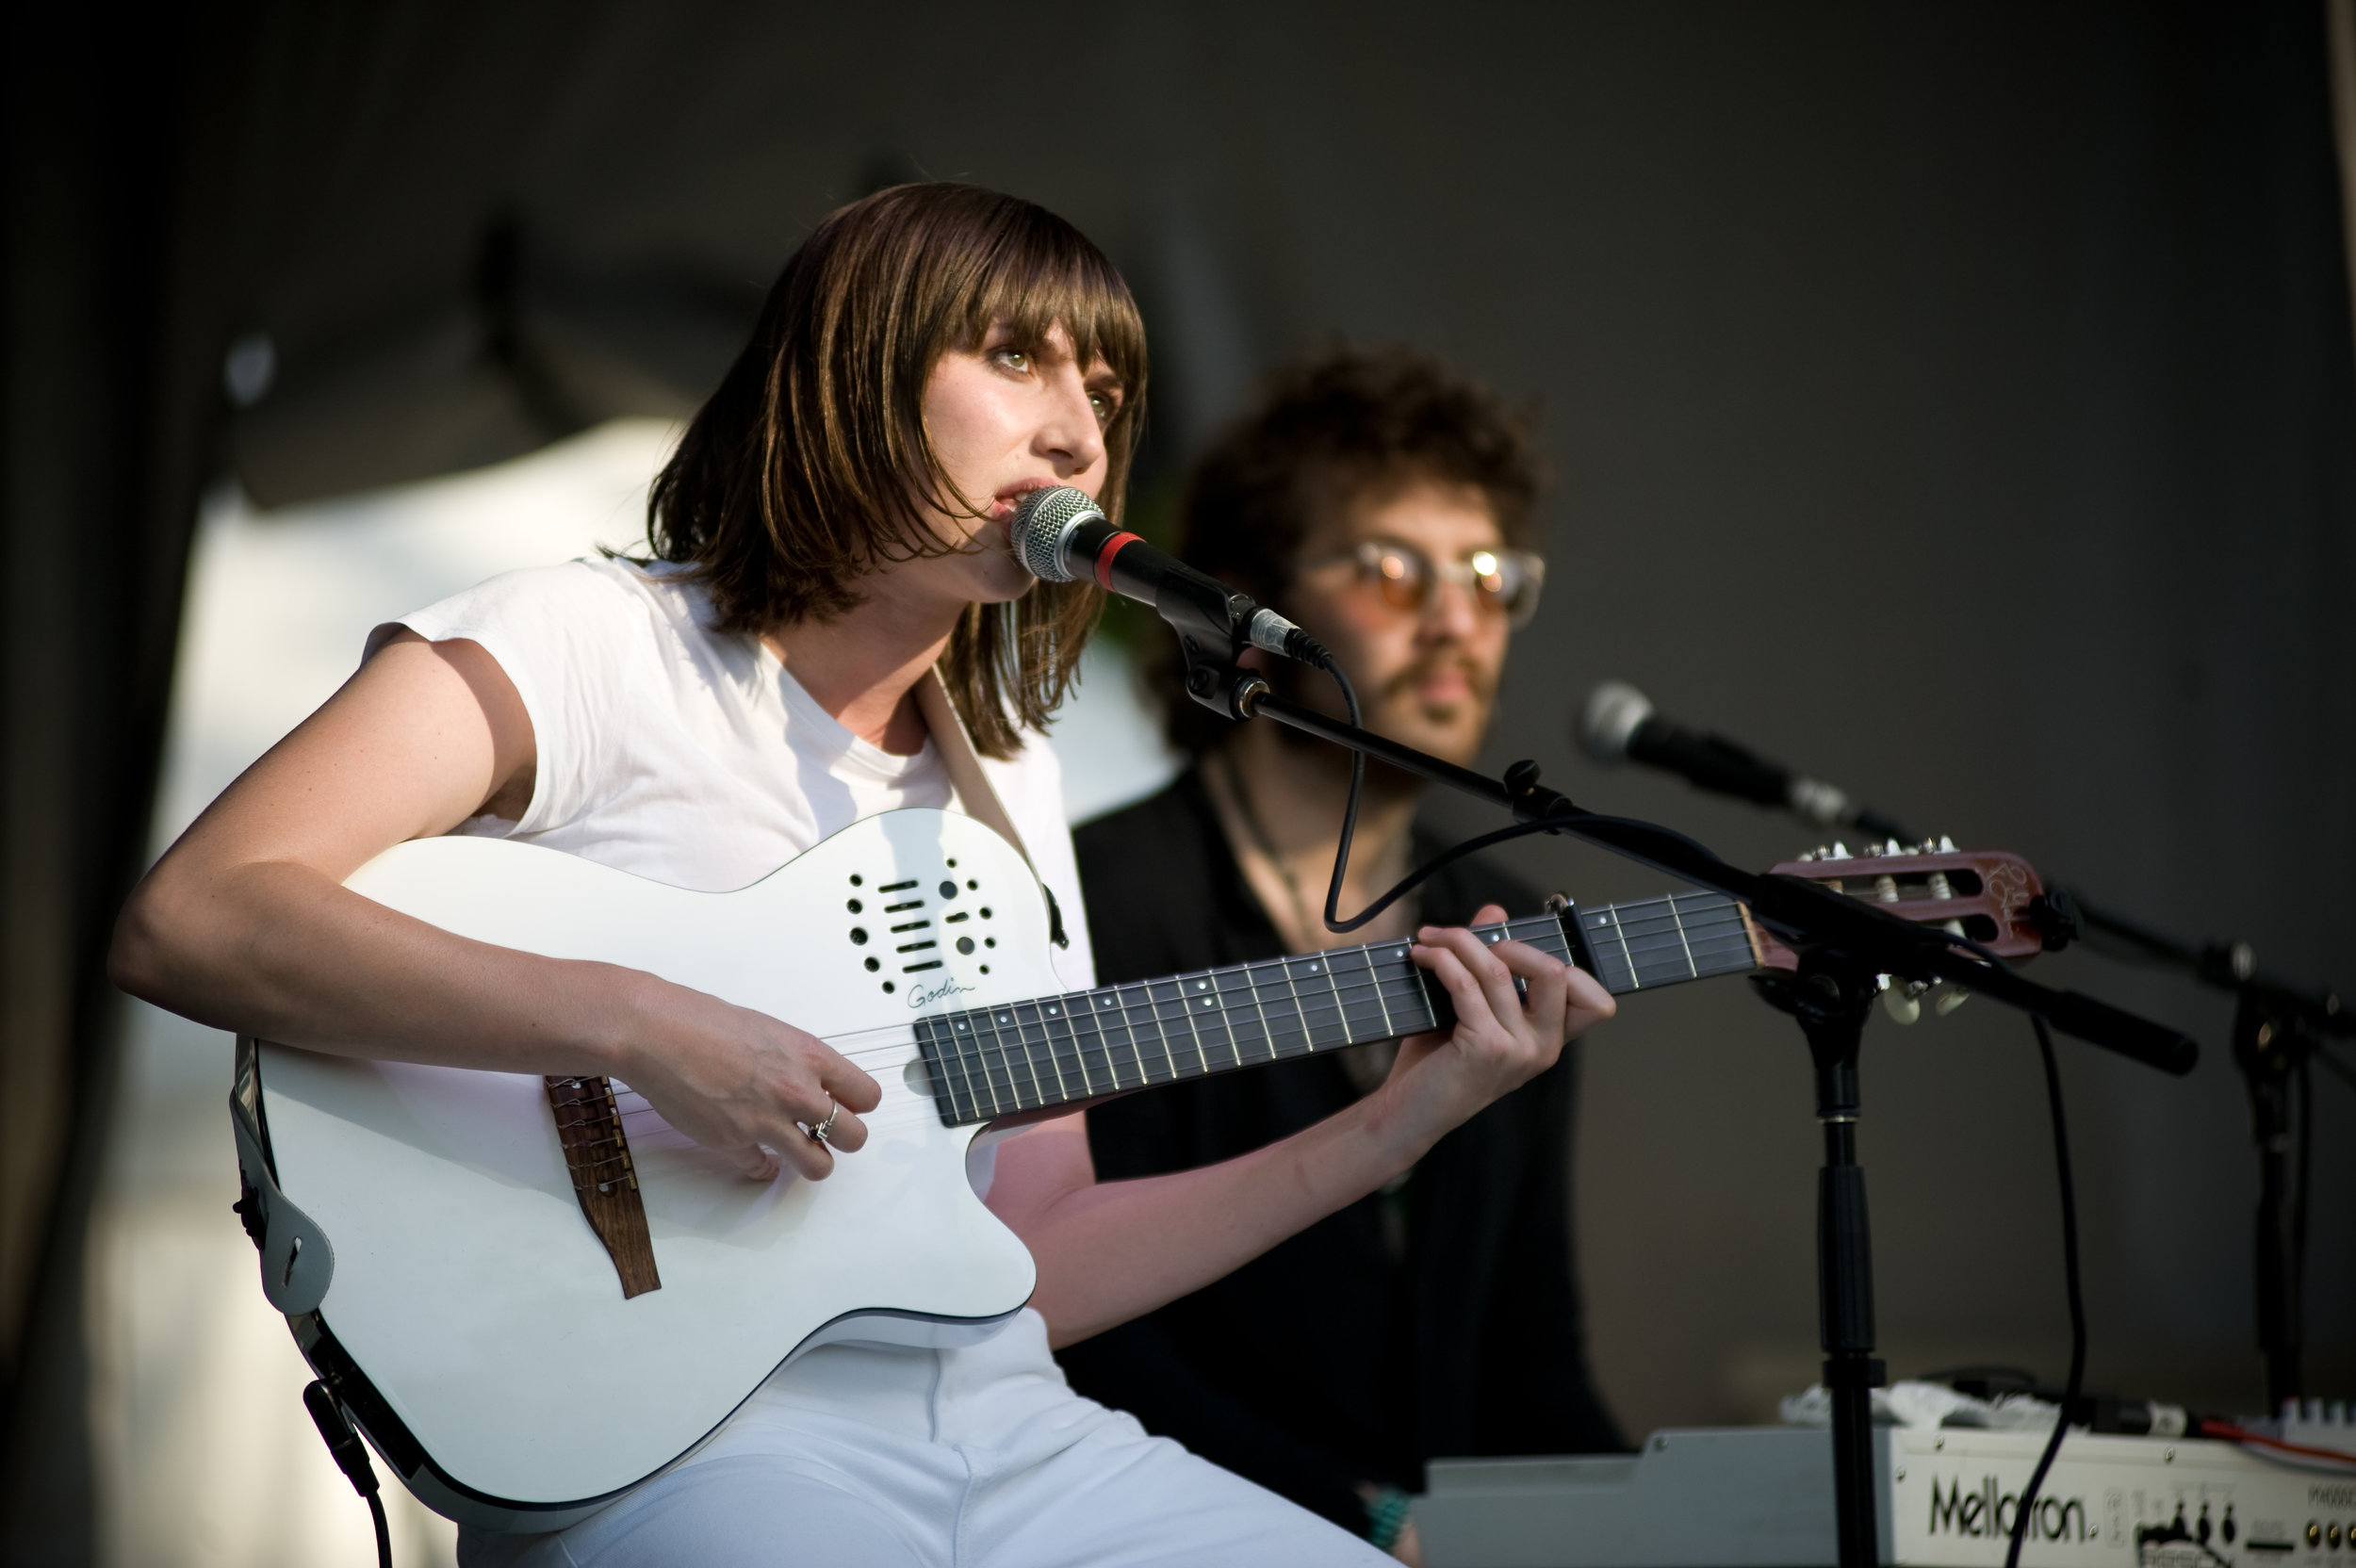 An unusual and happy surprise for my earbuds,  Aldous Harding  (and Invisible Familiars) were a favorite of my weekend. So glad I got to see two performances of theirs at this year's fest.